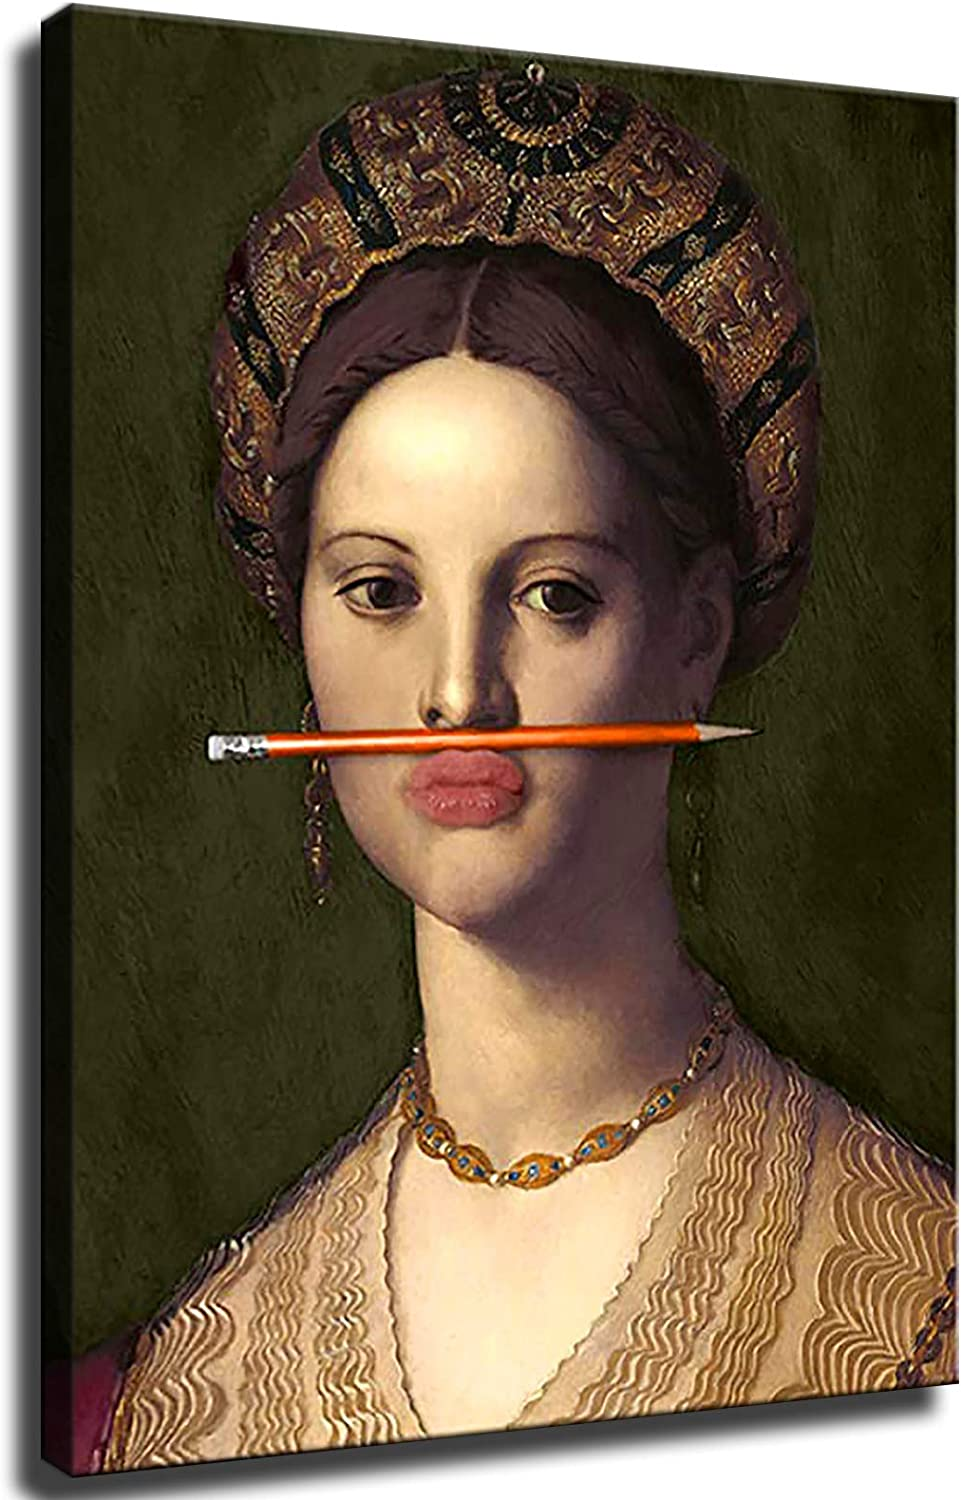 GREAT Modern Wall Poster Art Print Oil Painting on Canvas Home Decor Wall Decoration Canvas Art renaissance baroque painting portrait (Framed-Ready to Hang,20×27inch)